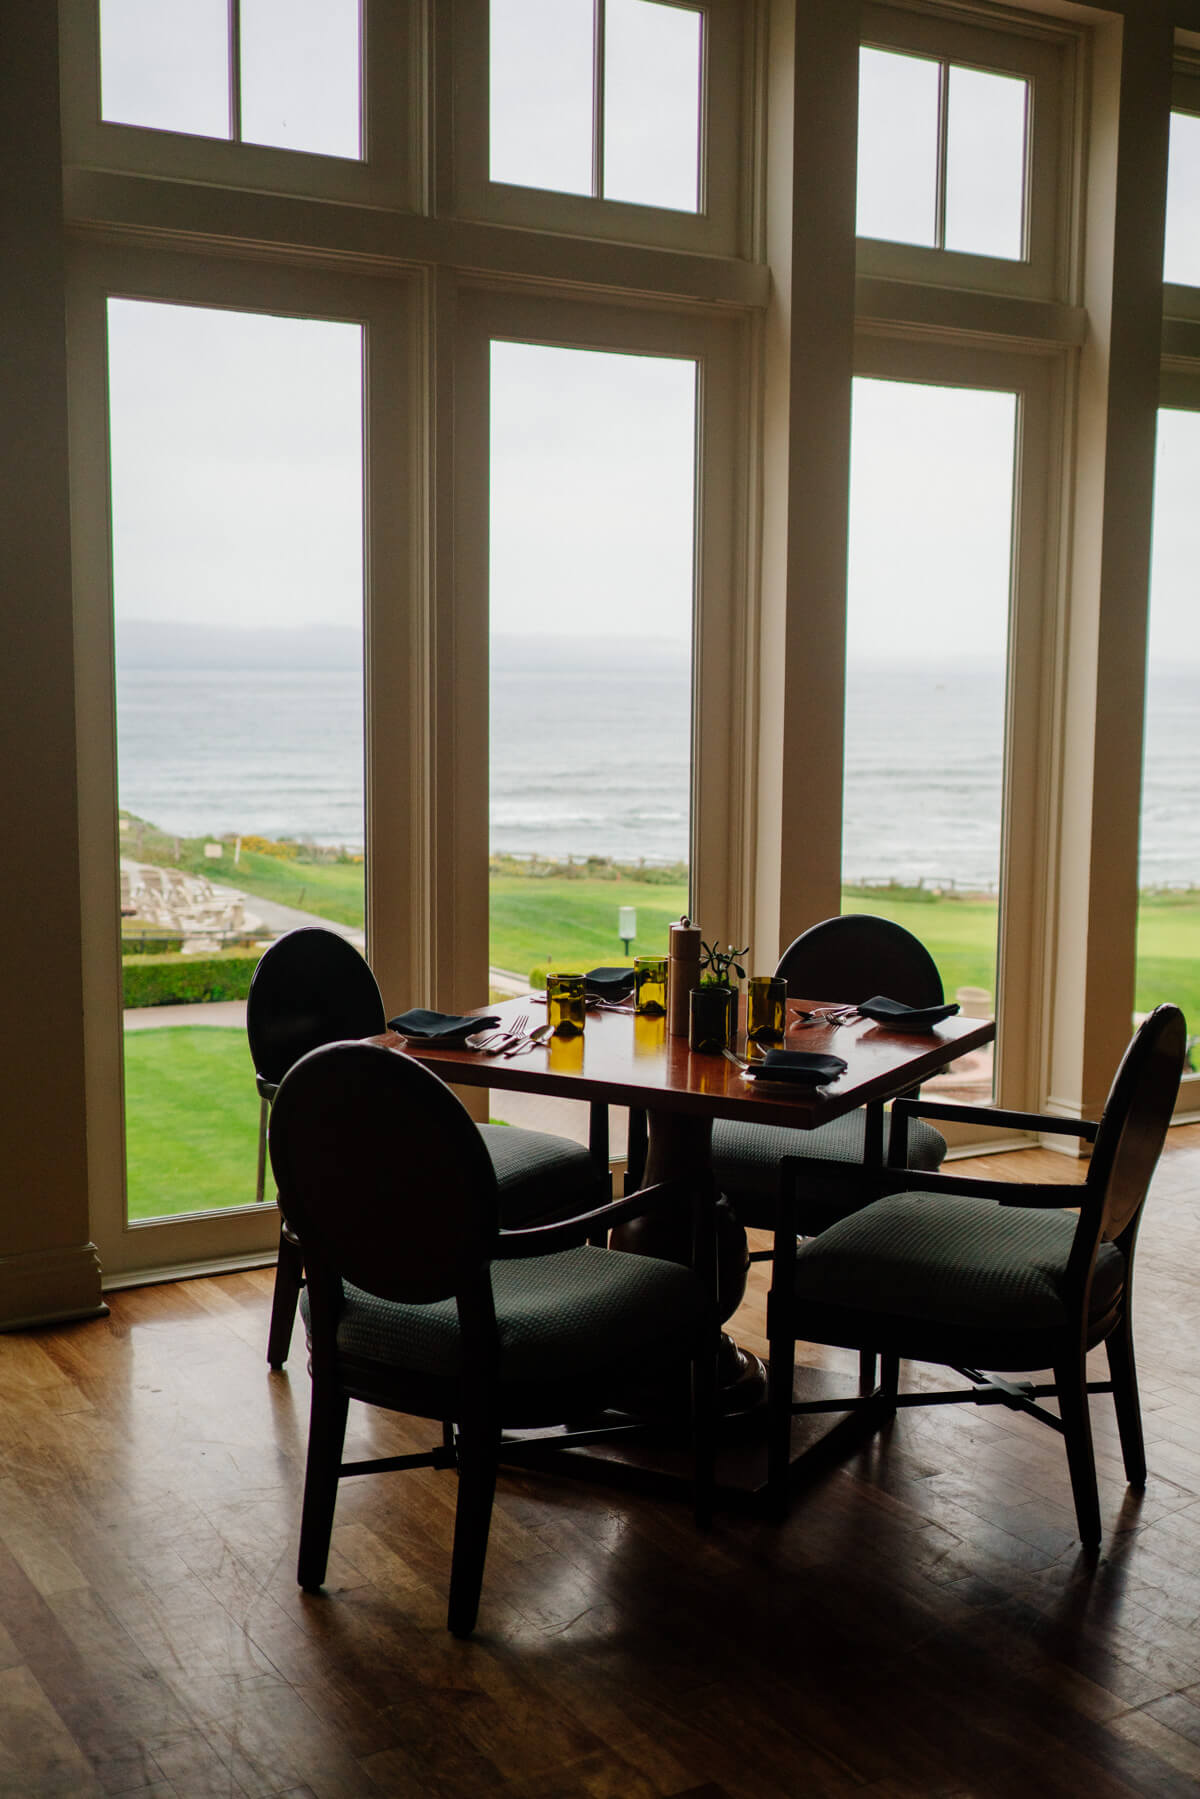 Large windows look over the ocean at The Ritz-Carlton Half Moon Bay